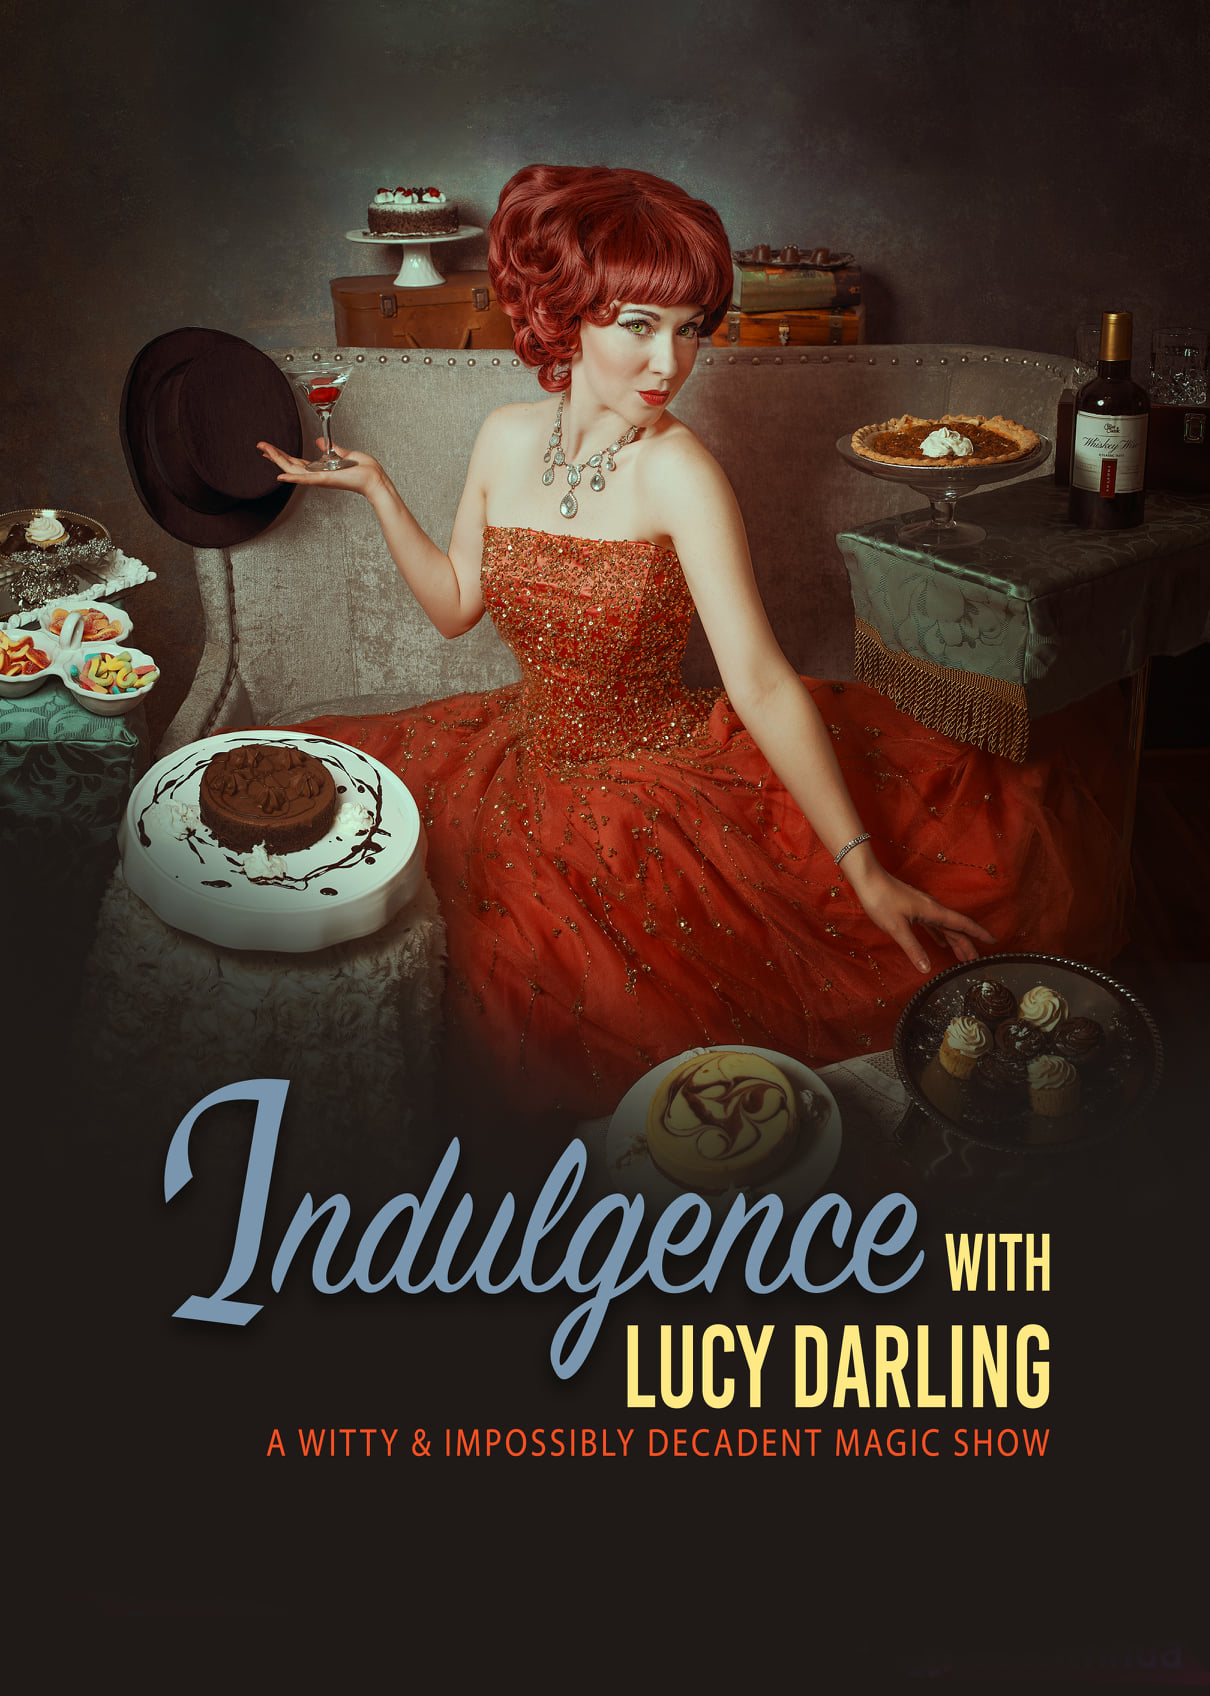 Announcing the Three Month Chicago Run of Indulgence with Lucy Darling